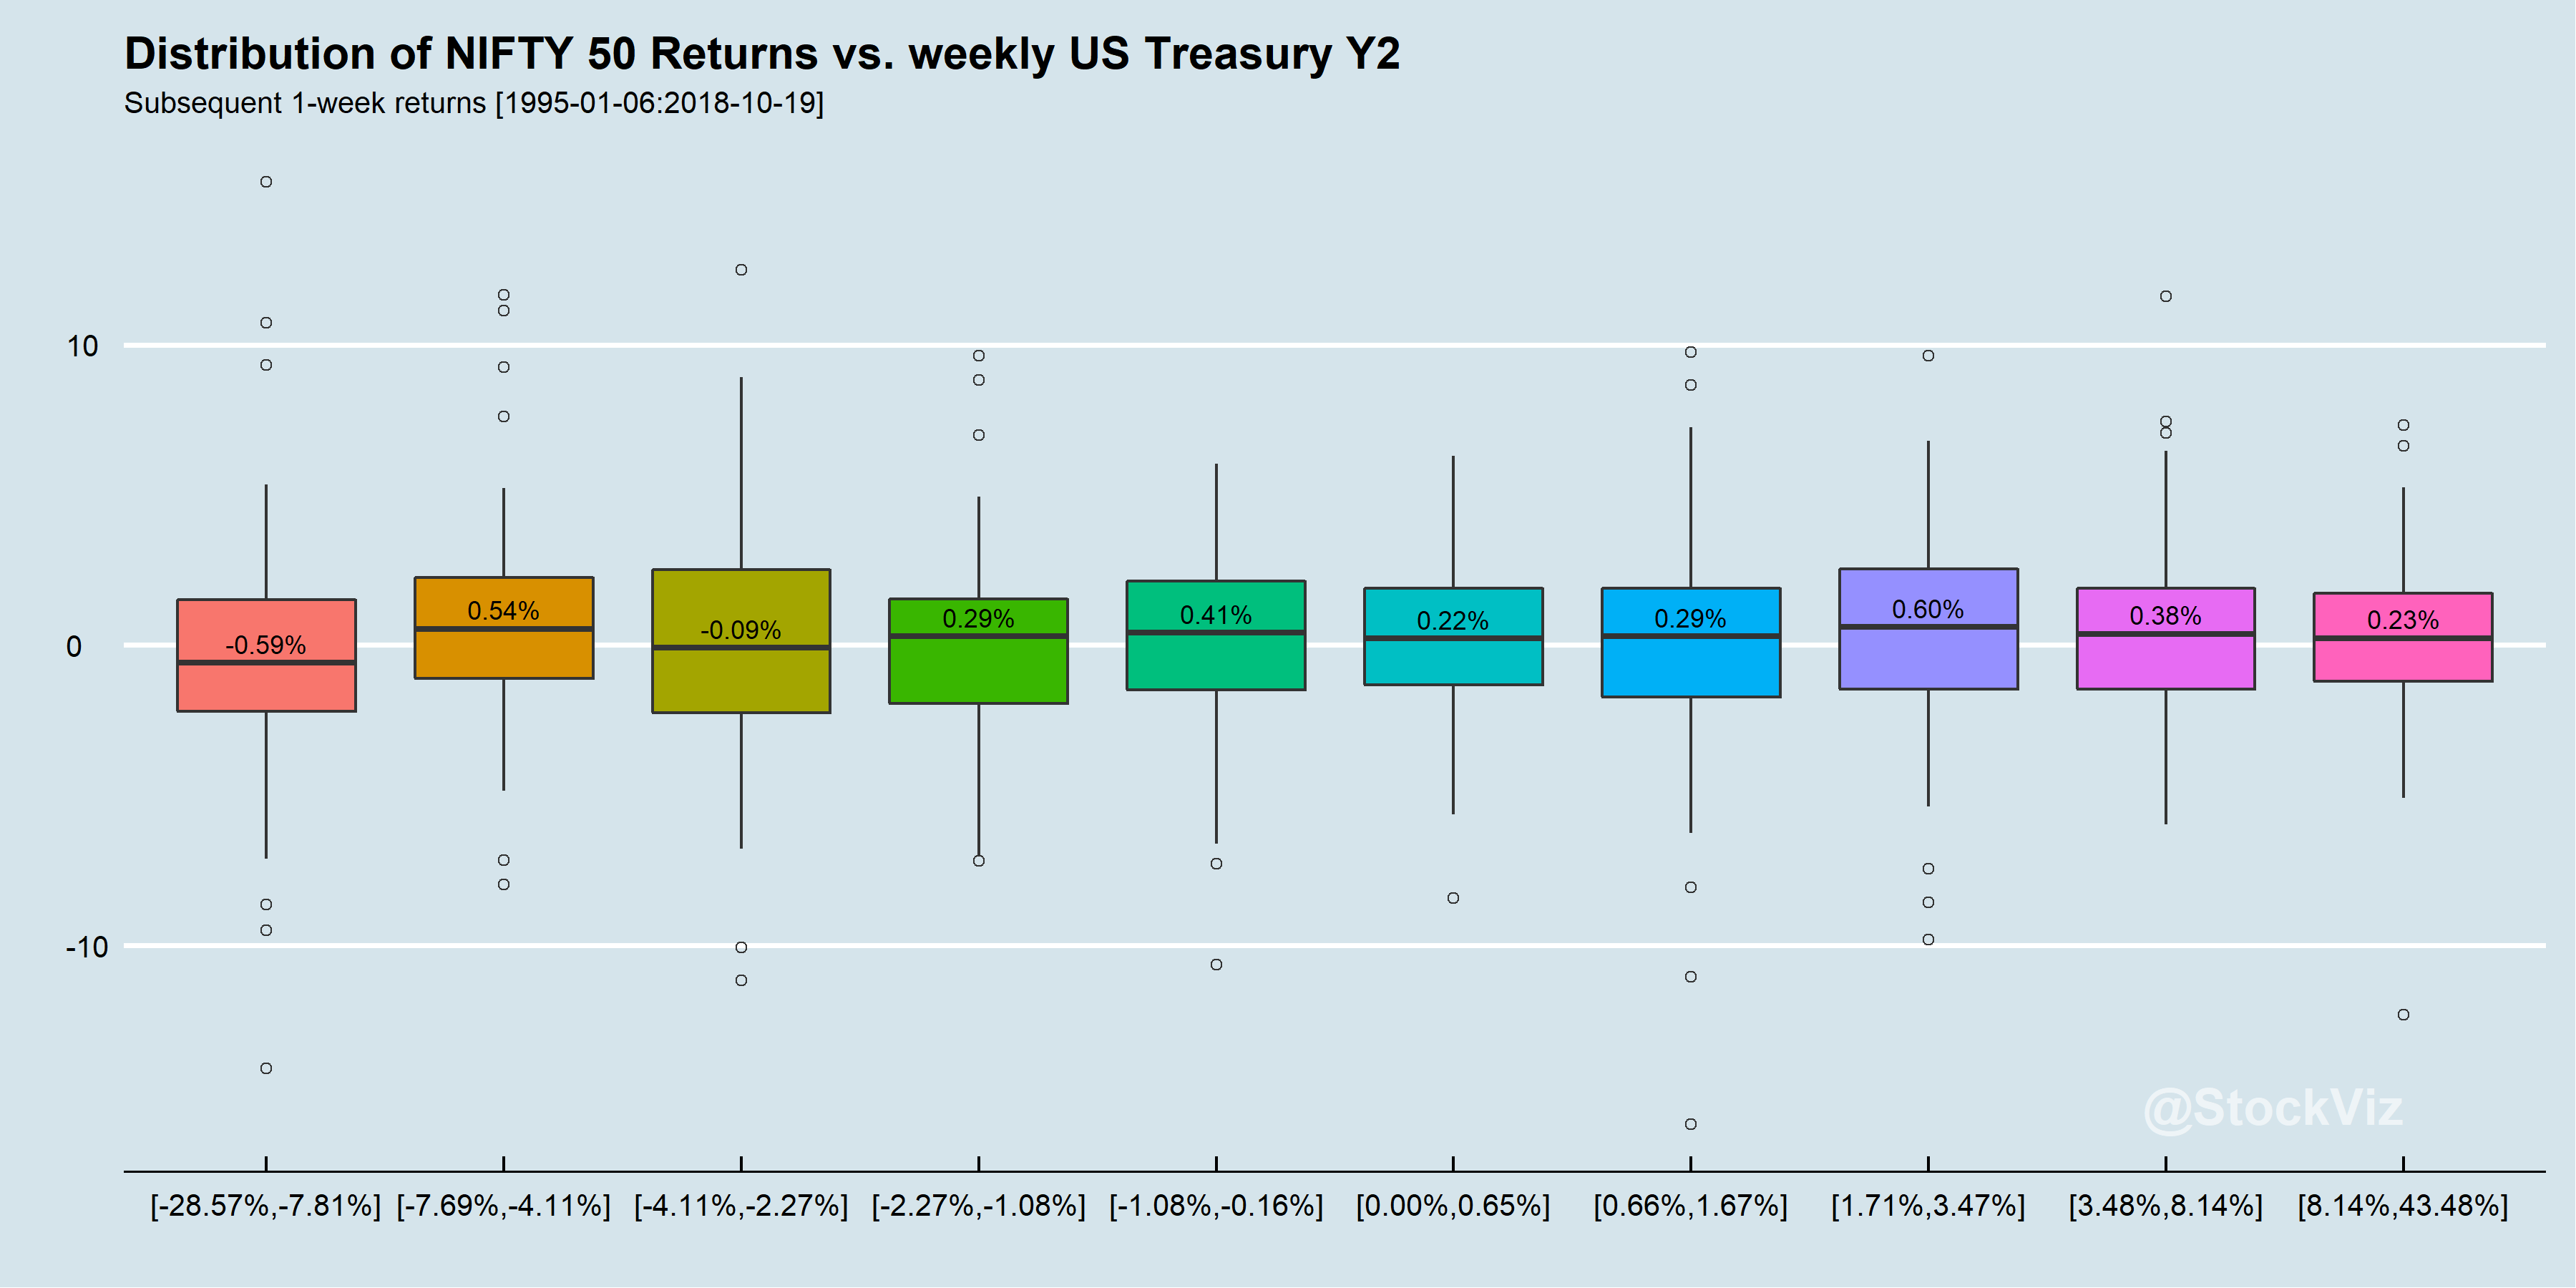 Two-year US Treasury weekly returns vs. subsequent NIFTY 50 returns